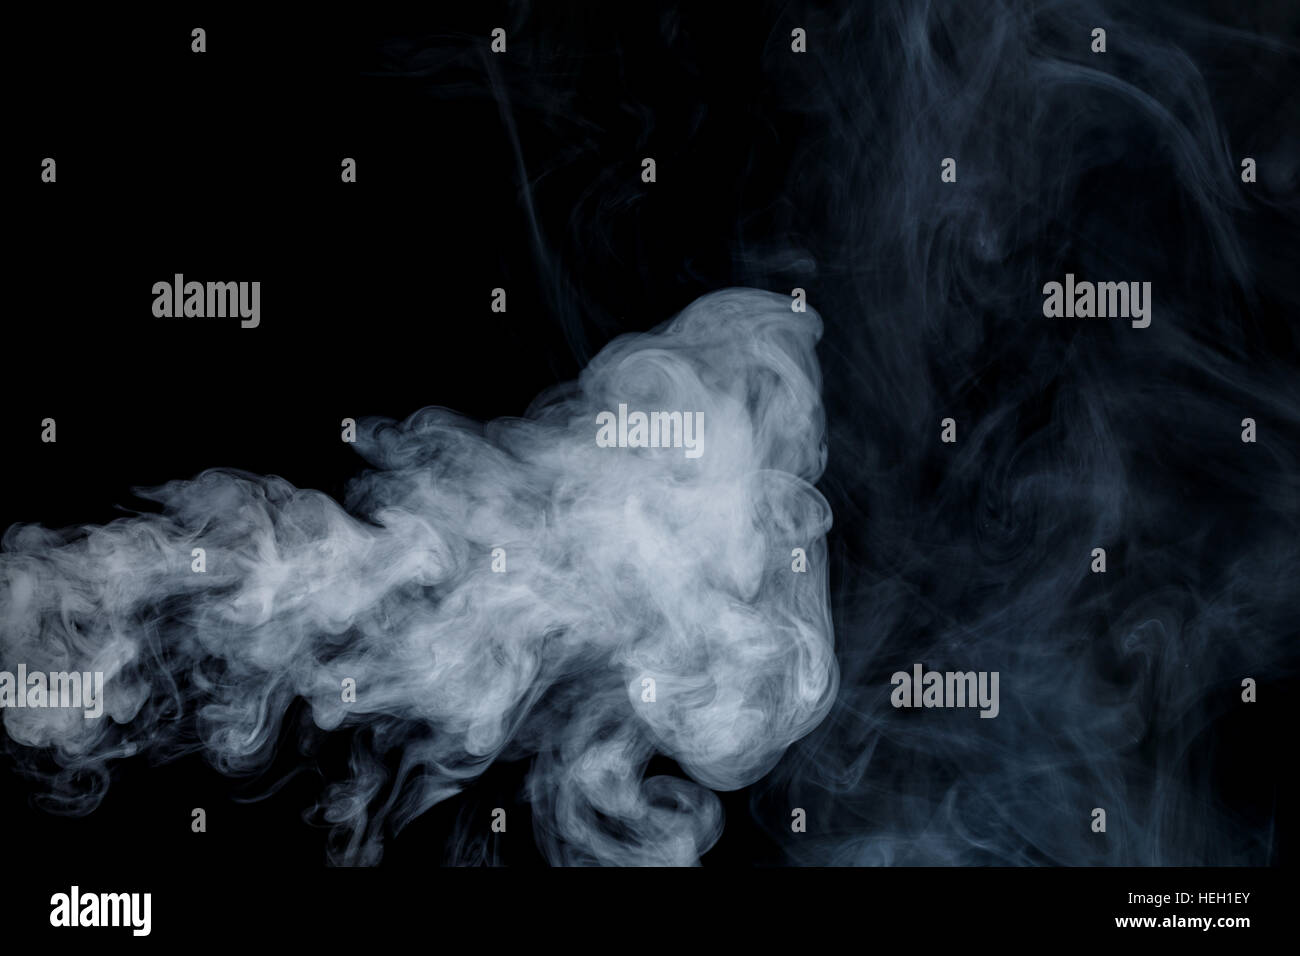 Smoking A Cigaret Stock Photos & Smoking A Cigaret Stock